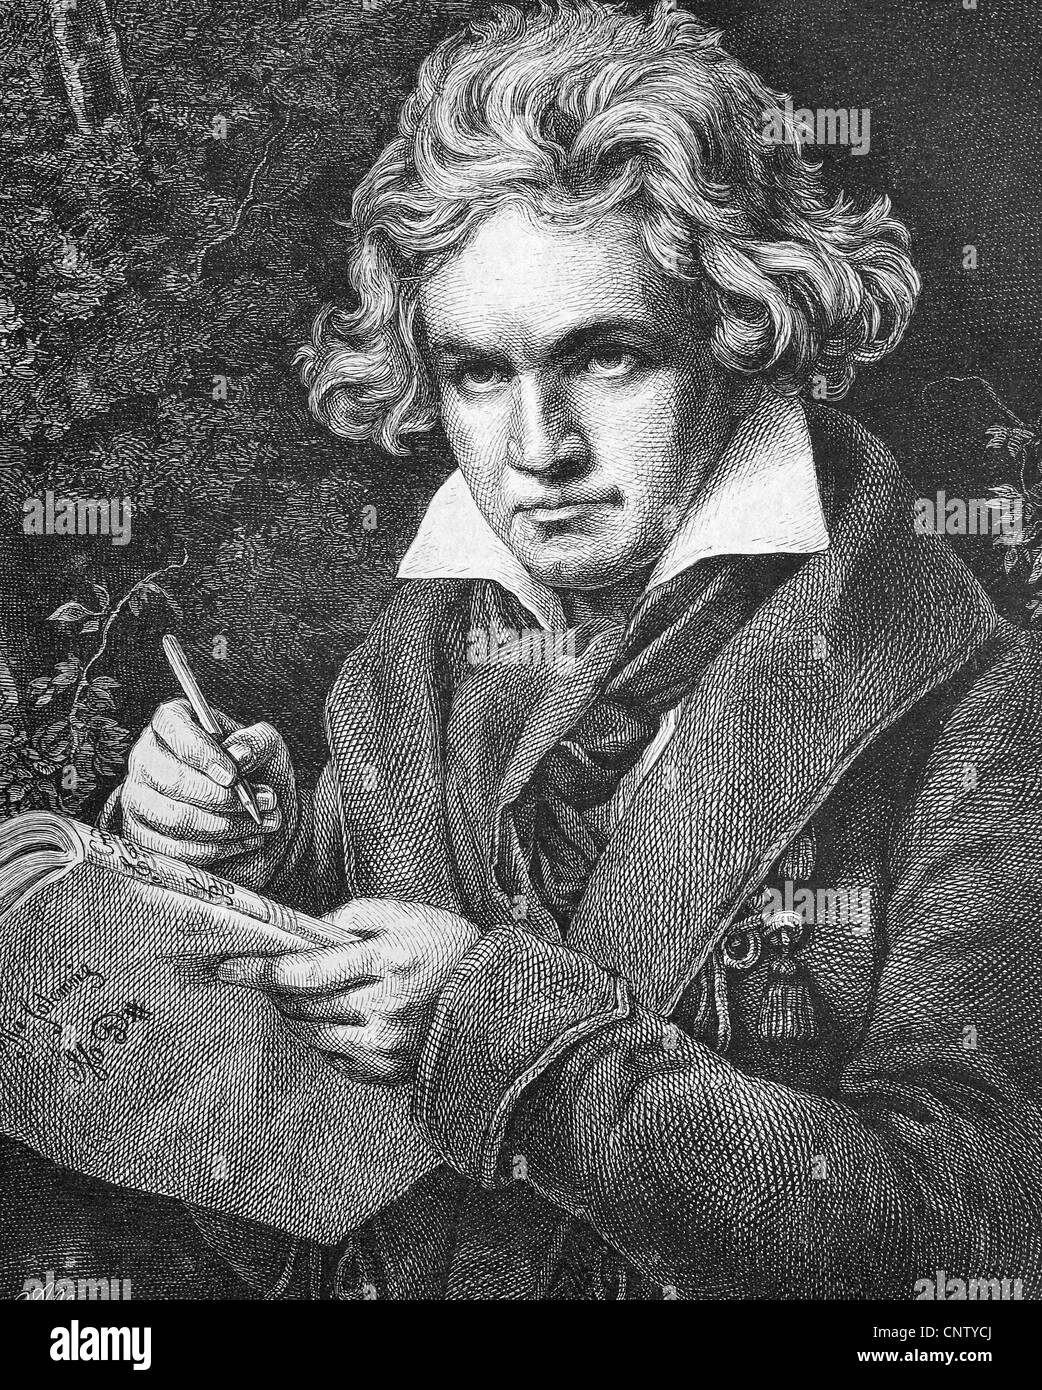 Ludwig van Beethoven, 1770-1827, German composer of the First Viennese School, historic woodcut, ca. 1880 - Stock Image